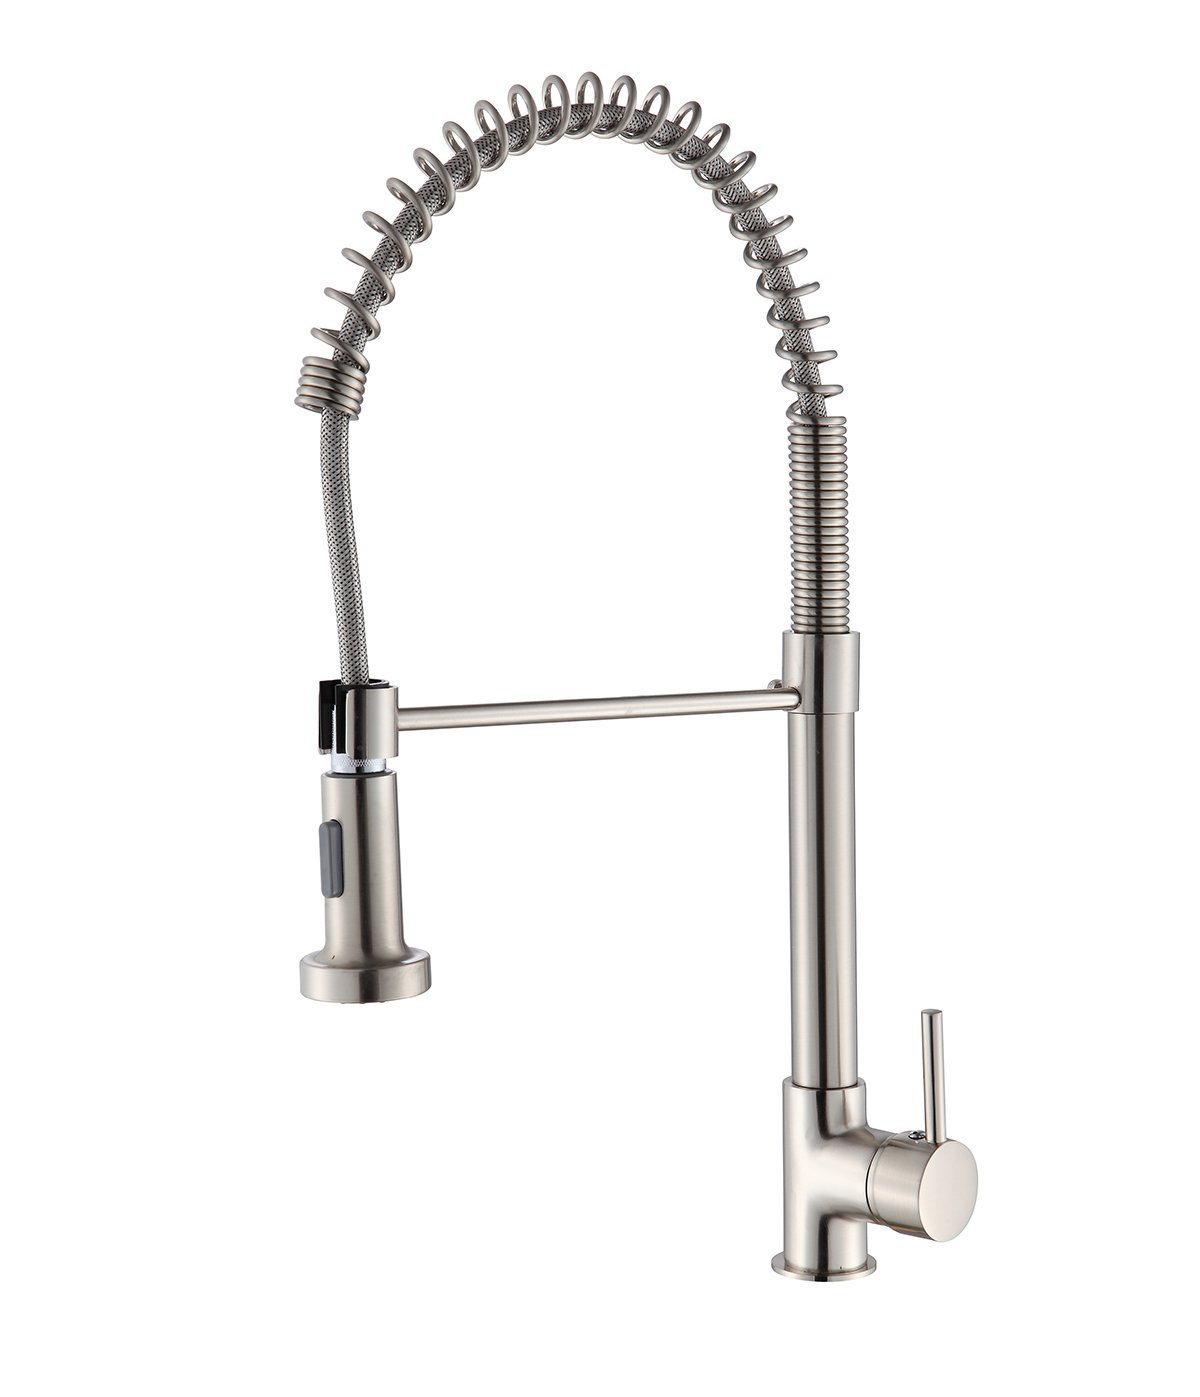 BuyHive Faucet Kitchen Home Pull Down Sprayer Swivel Spout Out Sink Mixer Tap Brushed Nickel Single Handle